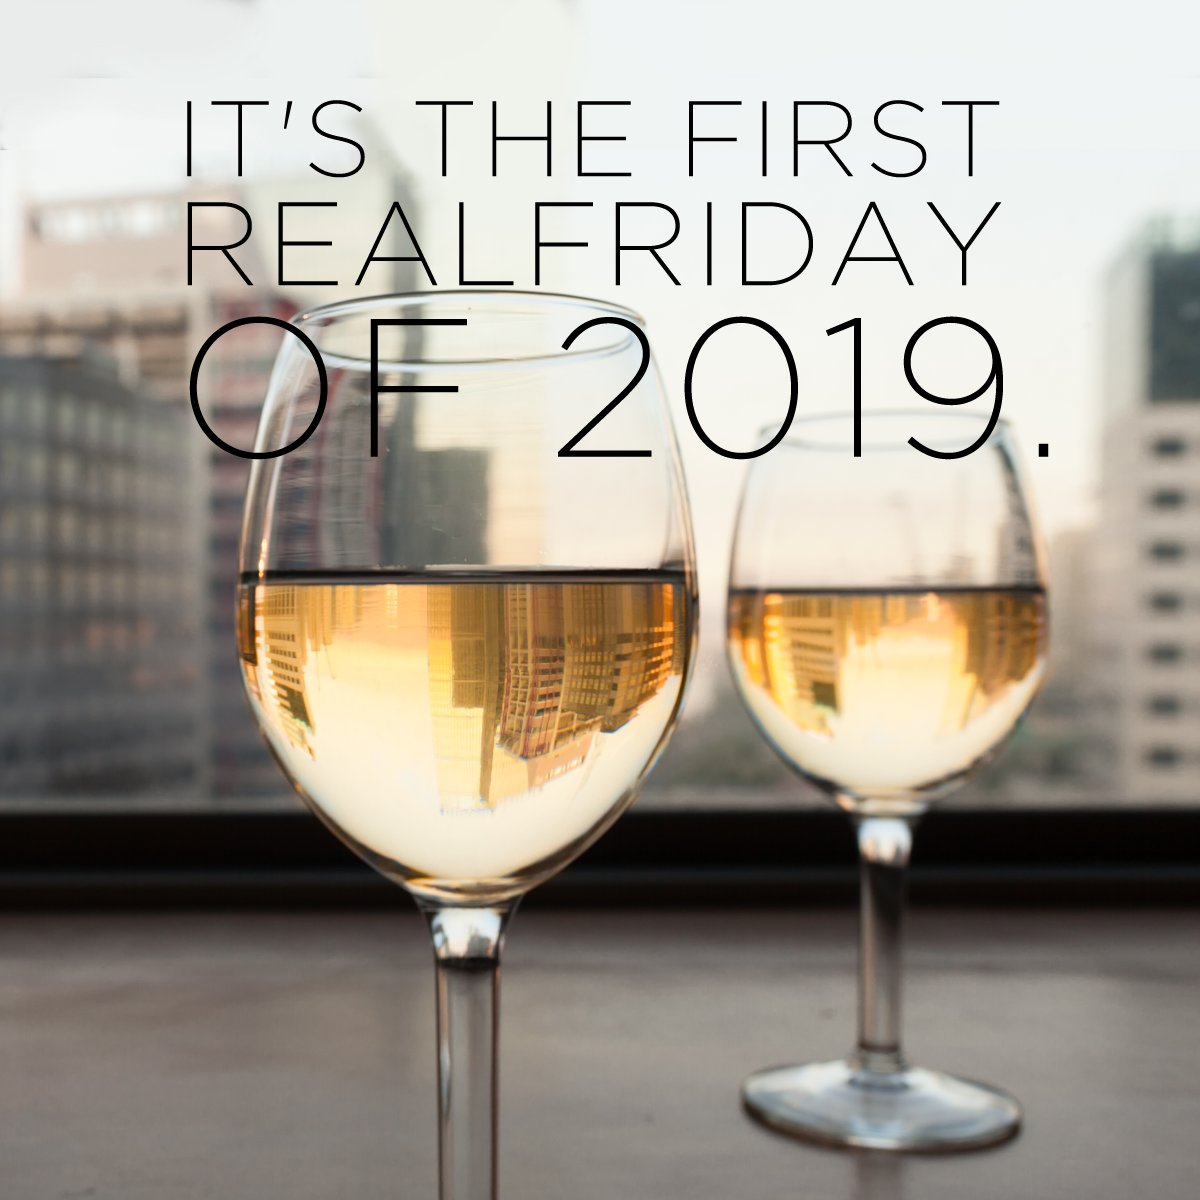 Holidays are over and this is the first ordinary Friday of the year. So it&#39;s worth an aperitif with a bottle of Marchese Raggio Gavi DOCG served at the right temperature. Enjoy the weekend!  #winelover #gavidocg #FridayMotivation <br>http://pic.twitter.com/pNC5w2KBYP